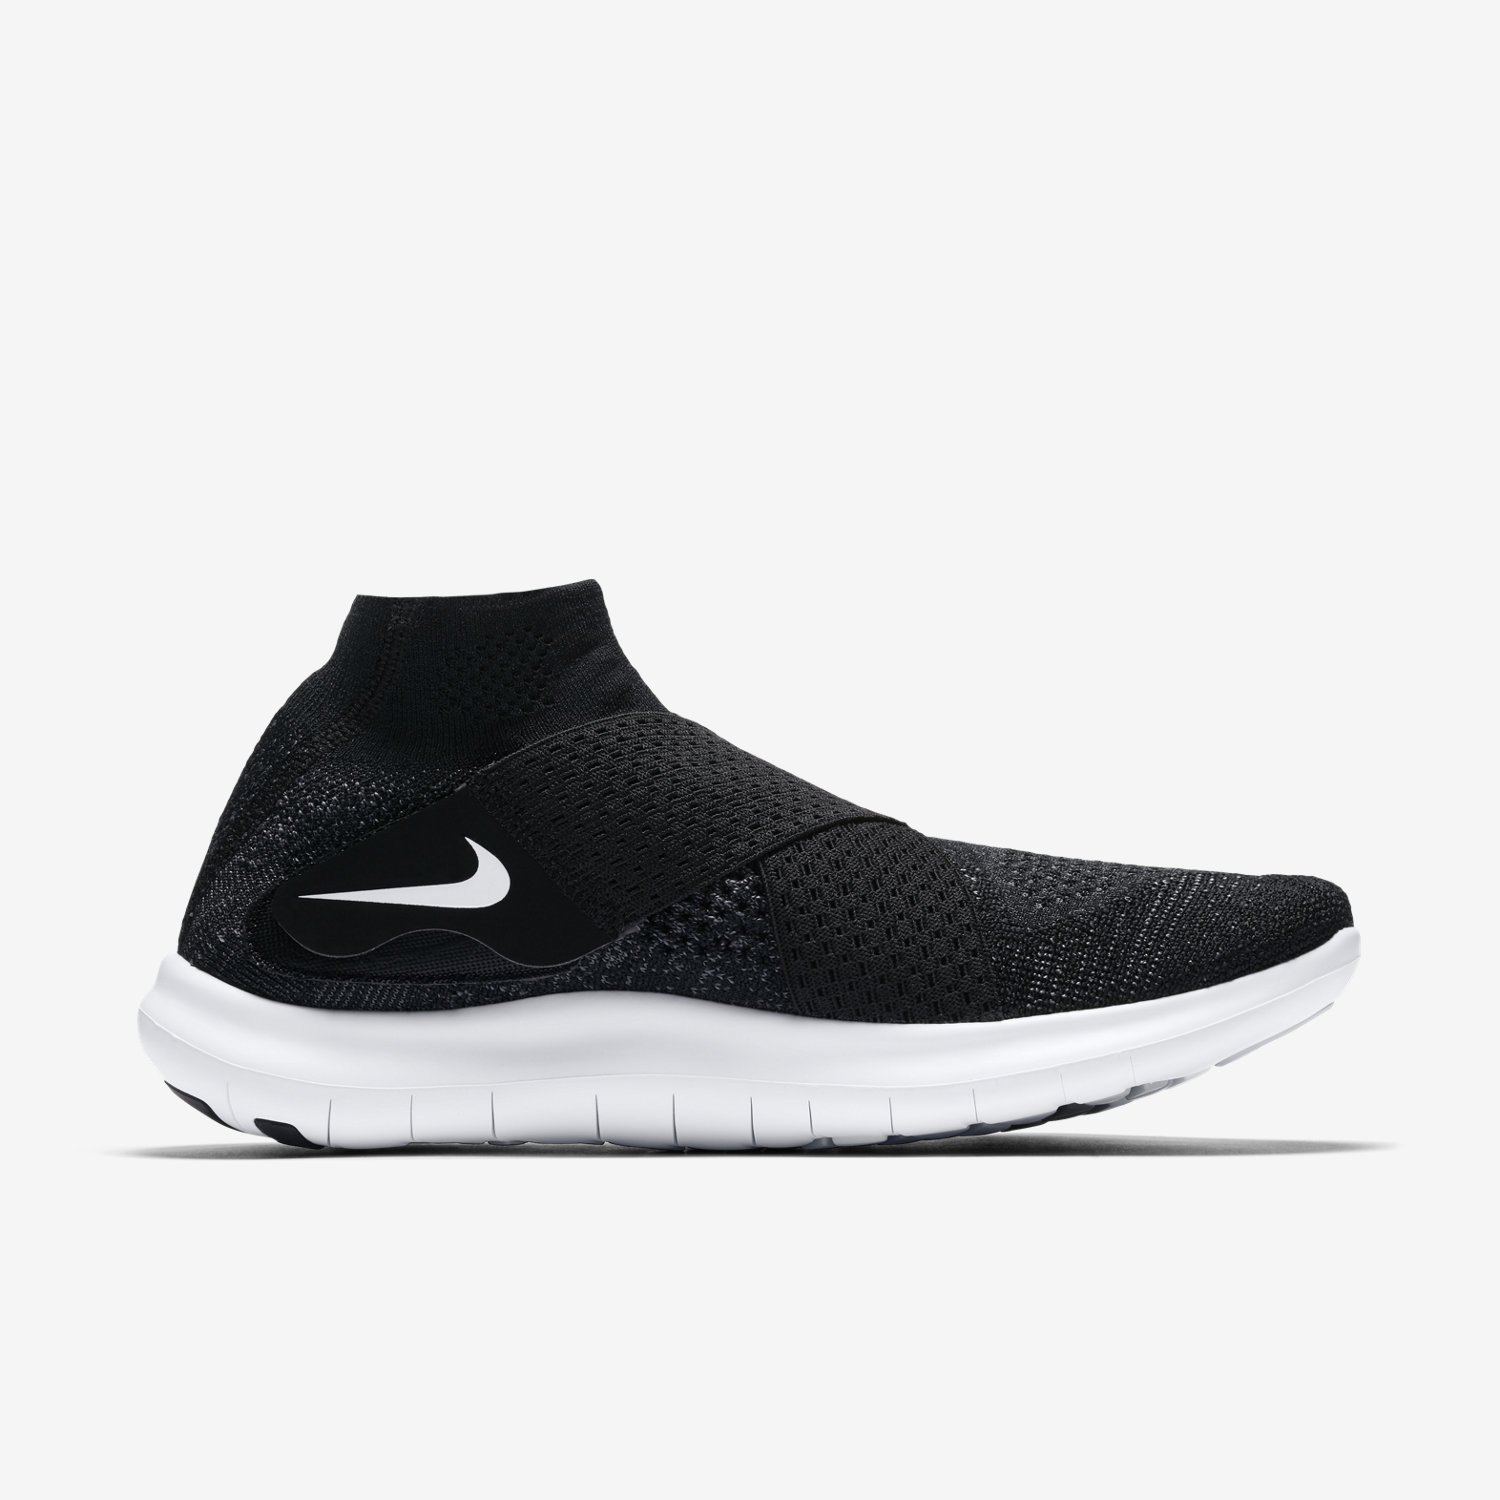 473137d6a492 Nike Free Rn Motion Flyknit   Buy Nike Shoes   Sneakers ...